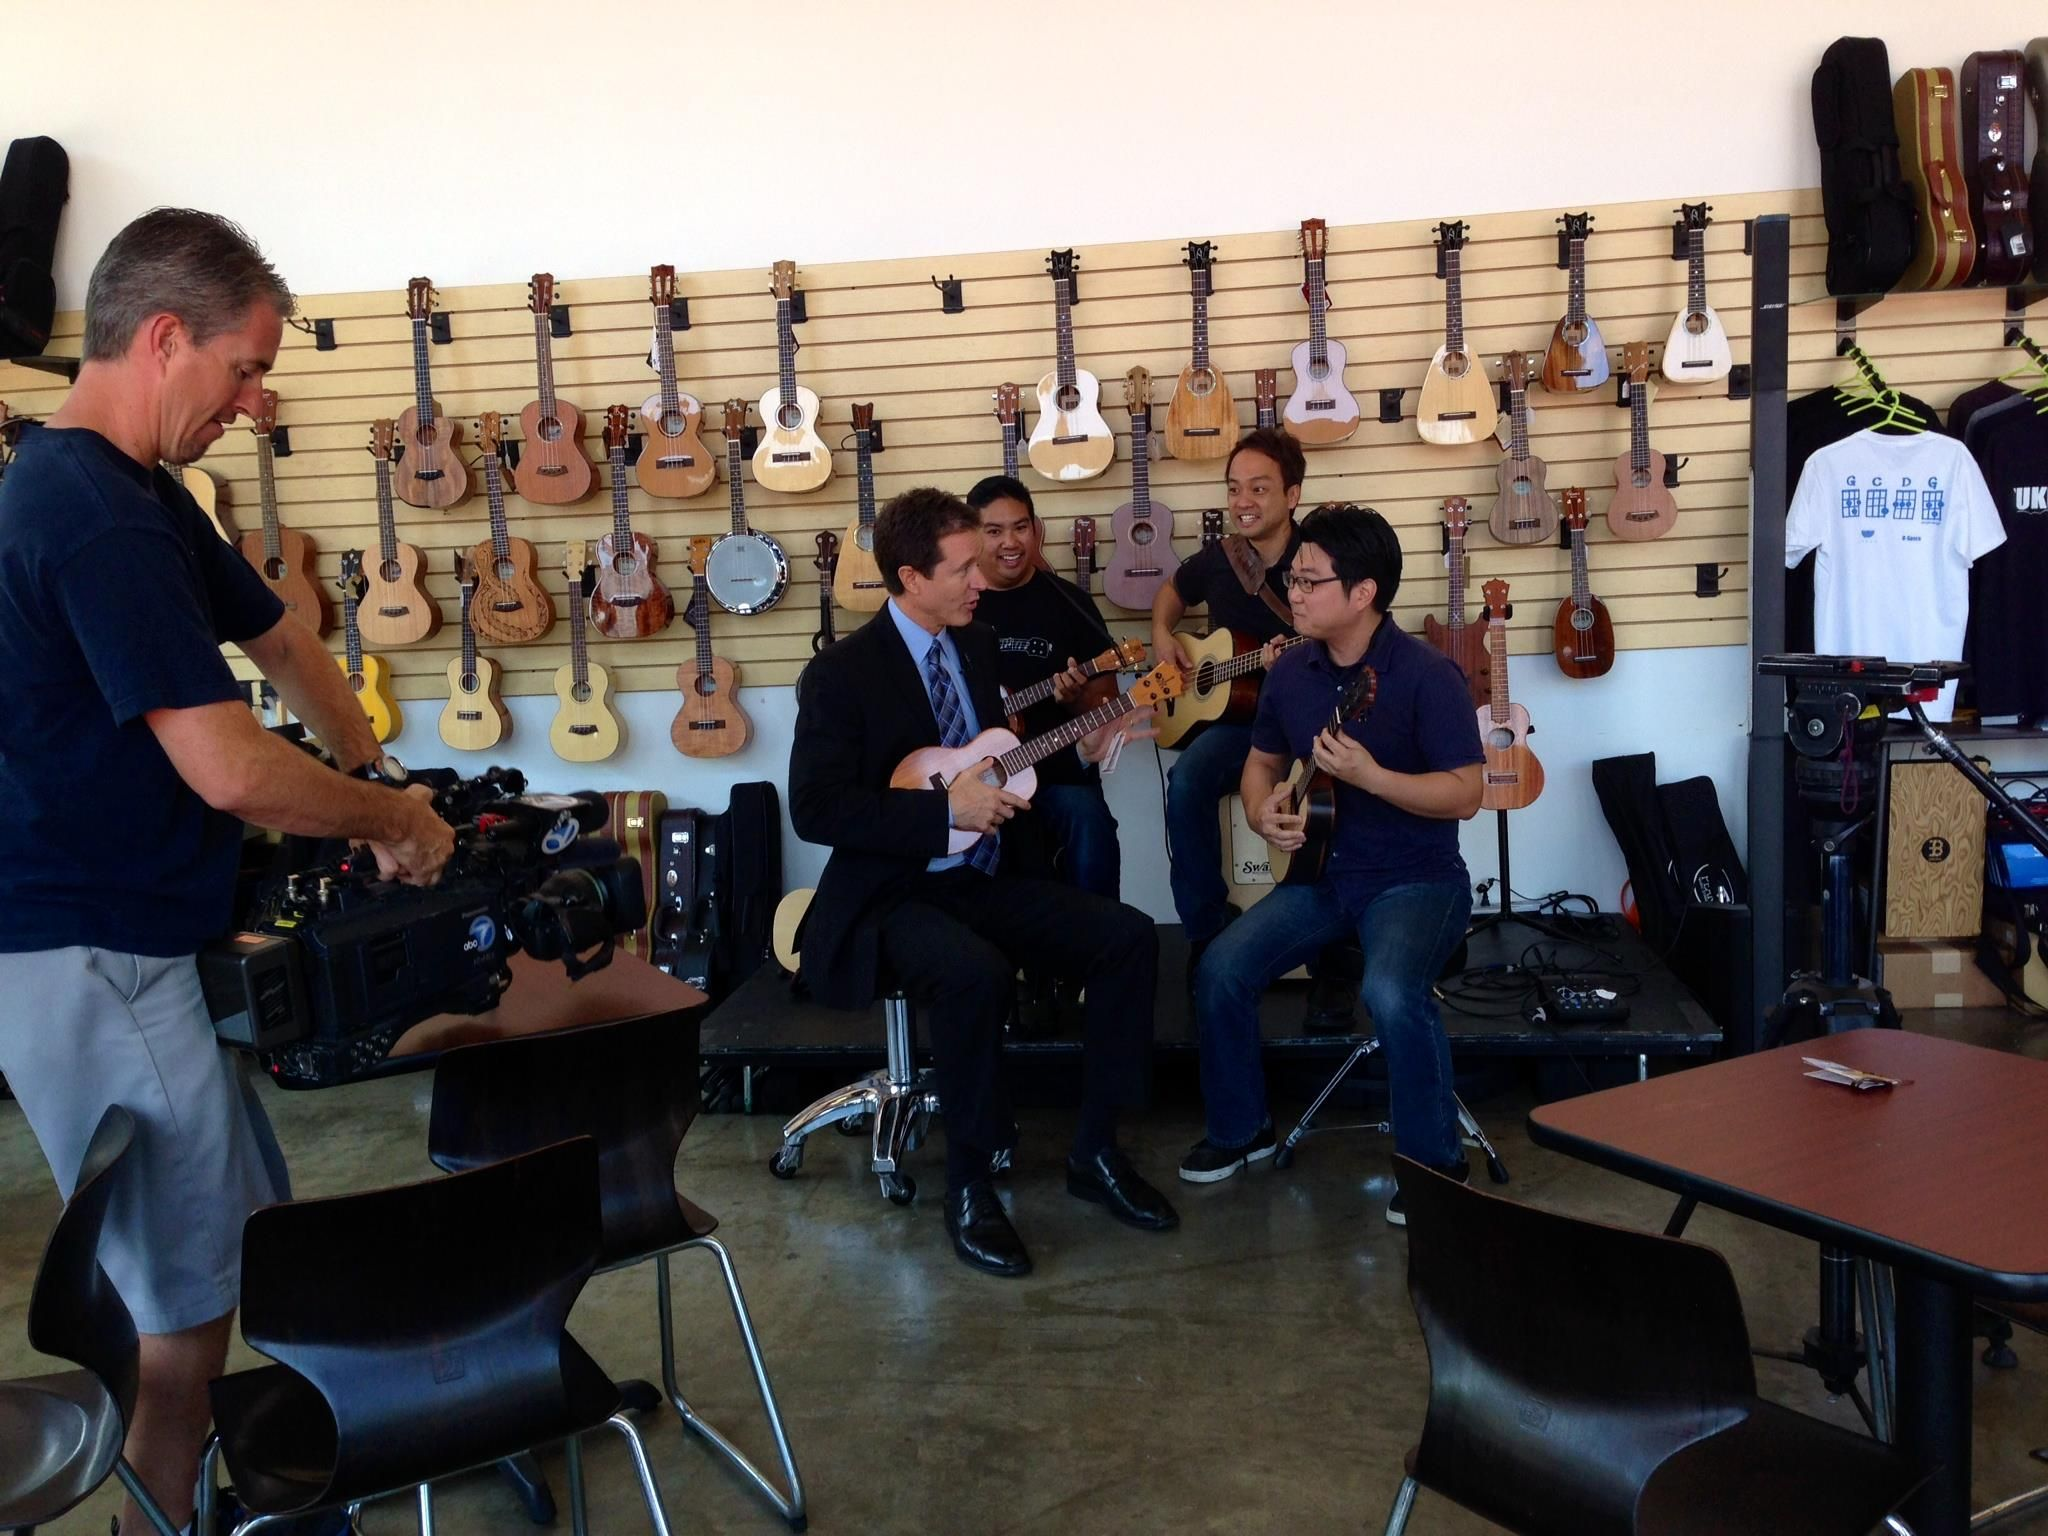 Come out a see the new Ohana Bongolele - just premiered on ABC7 - tomorrow morning at L.A. Ukulele Expo!